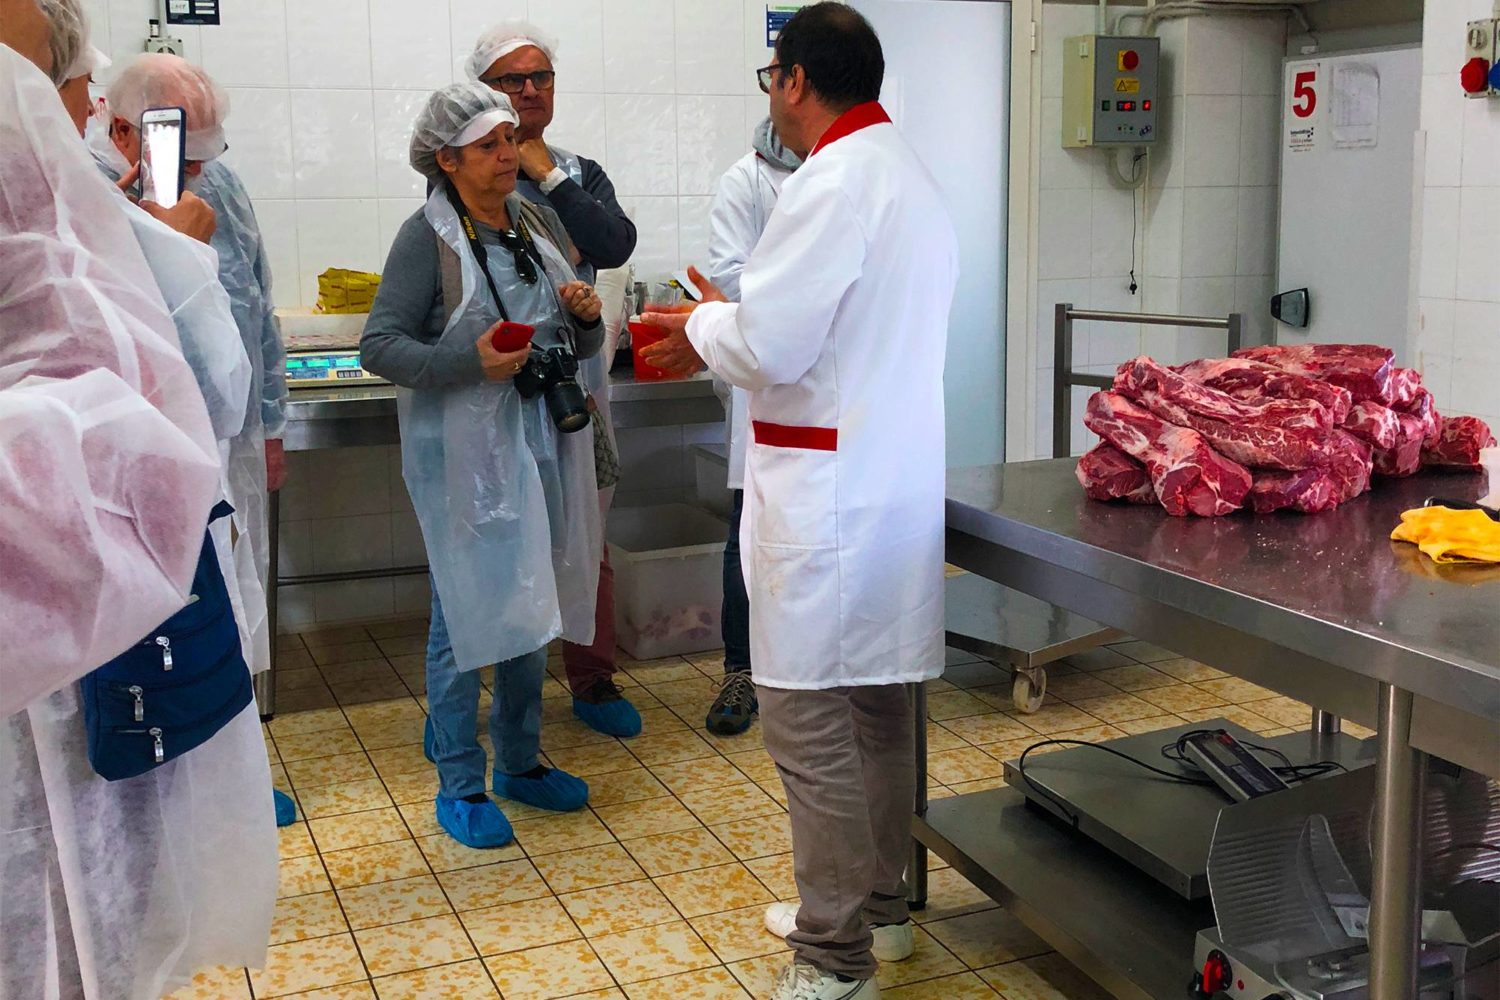 Tasting of Capocollo and other typical Apulian cured meats